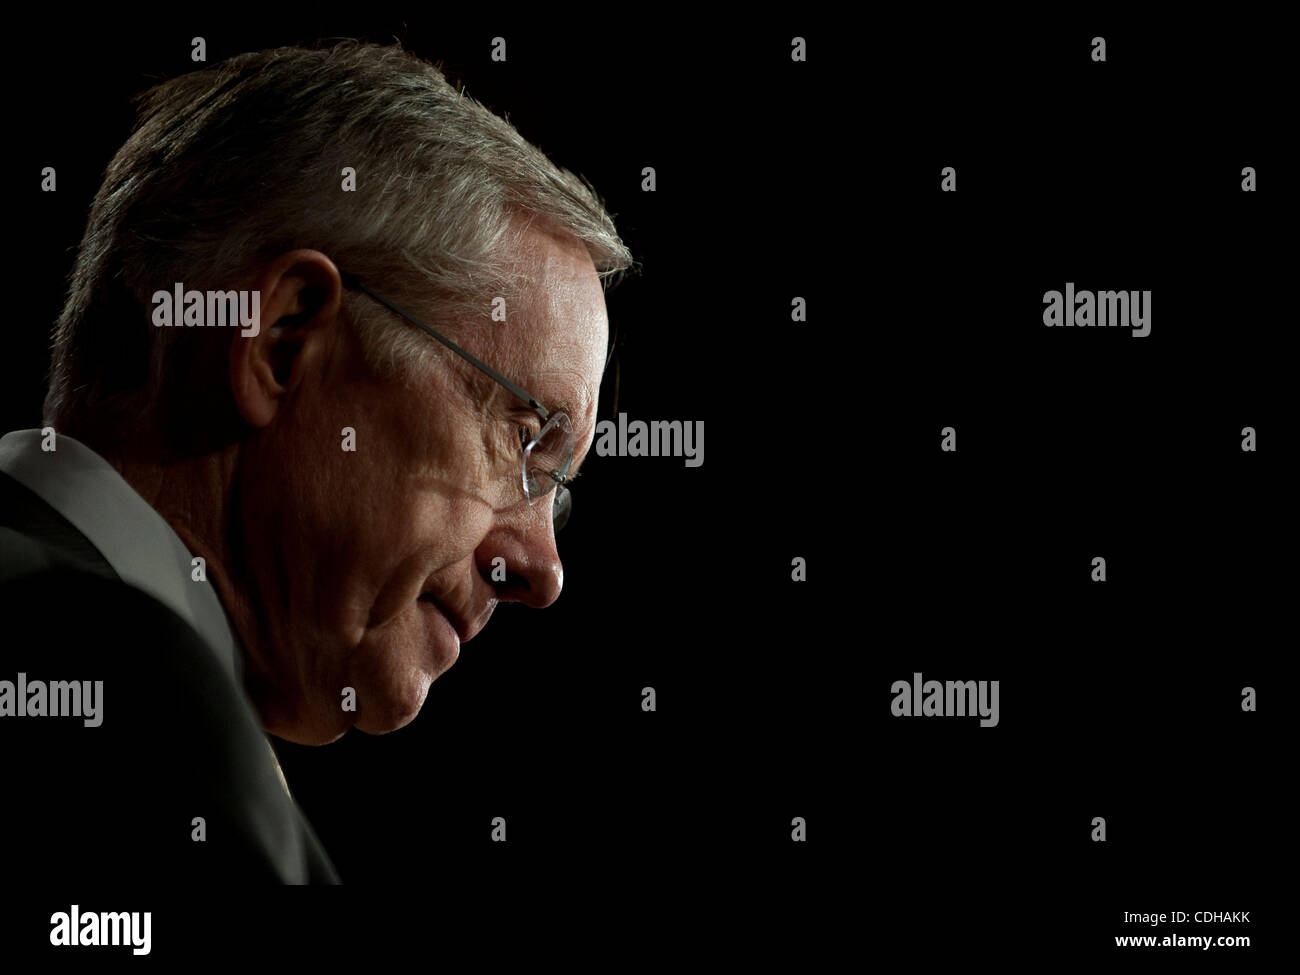 Feb 1, 2011 - Washington, District of Columbia, U.S. - The Senate Majority Leader HARRY REID (D-NV) during a press - Stock Image